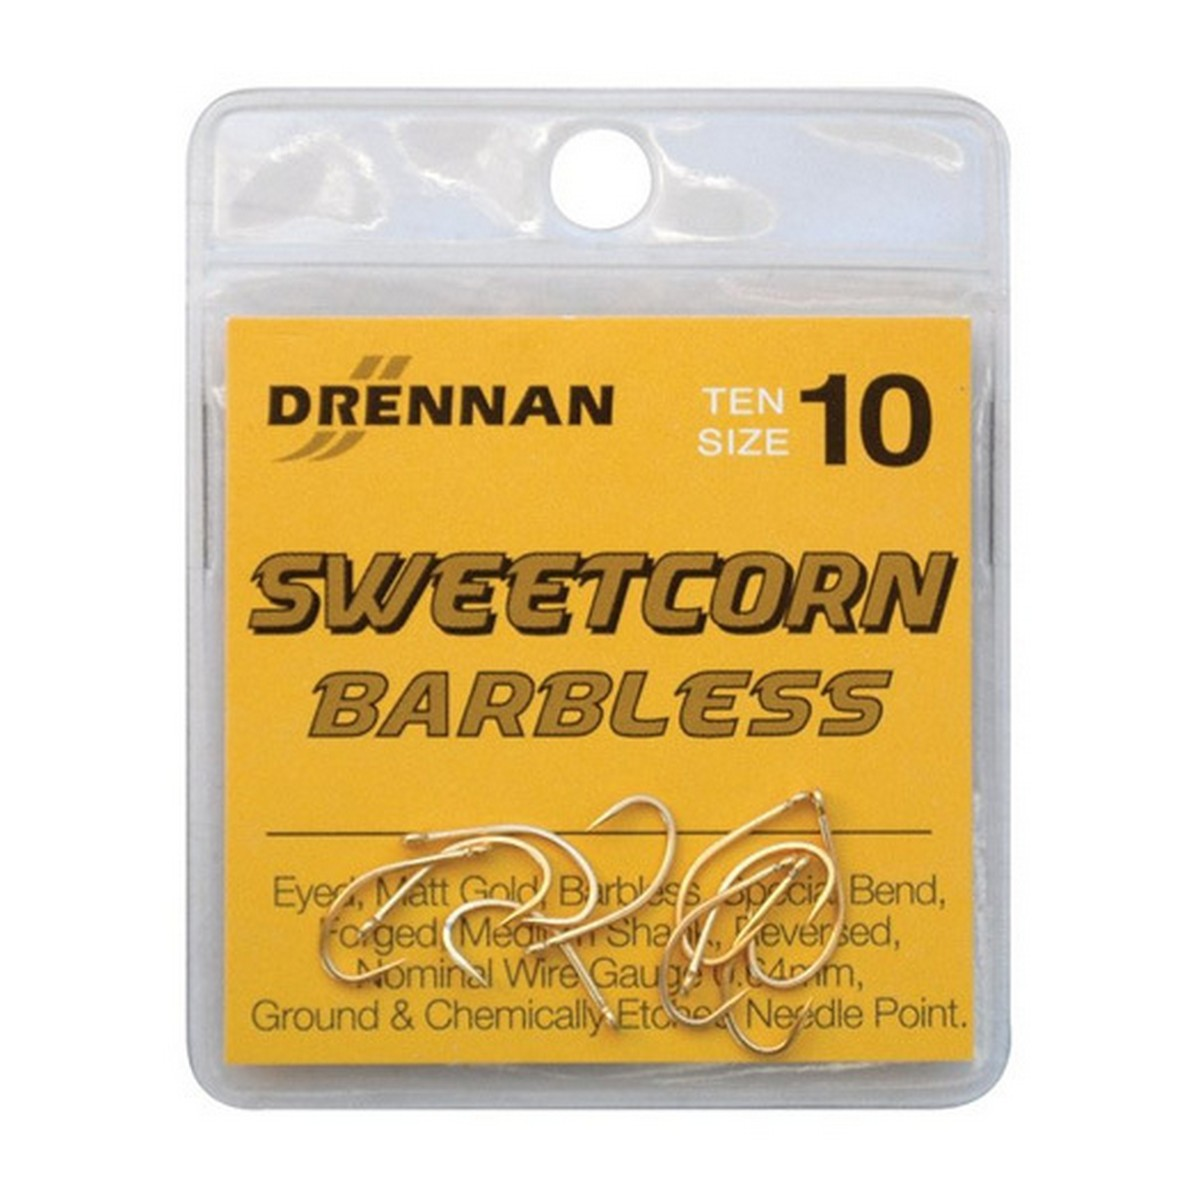 DRENNAN HOROG SWEETCORN BARBLESS 6 GOLD 10DB/CS